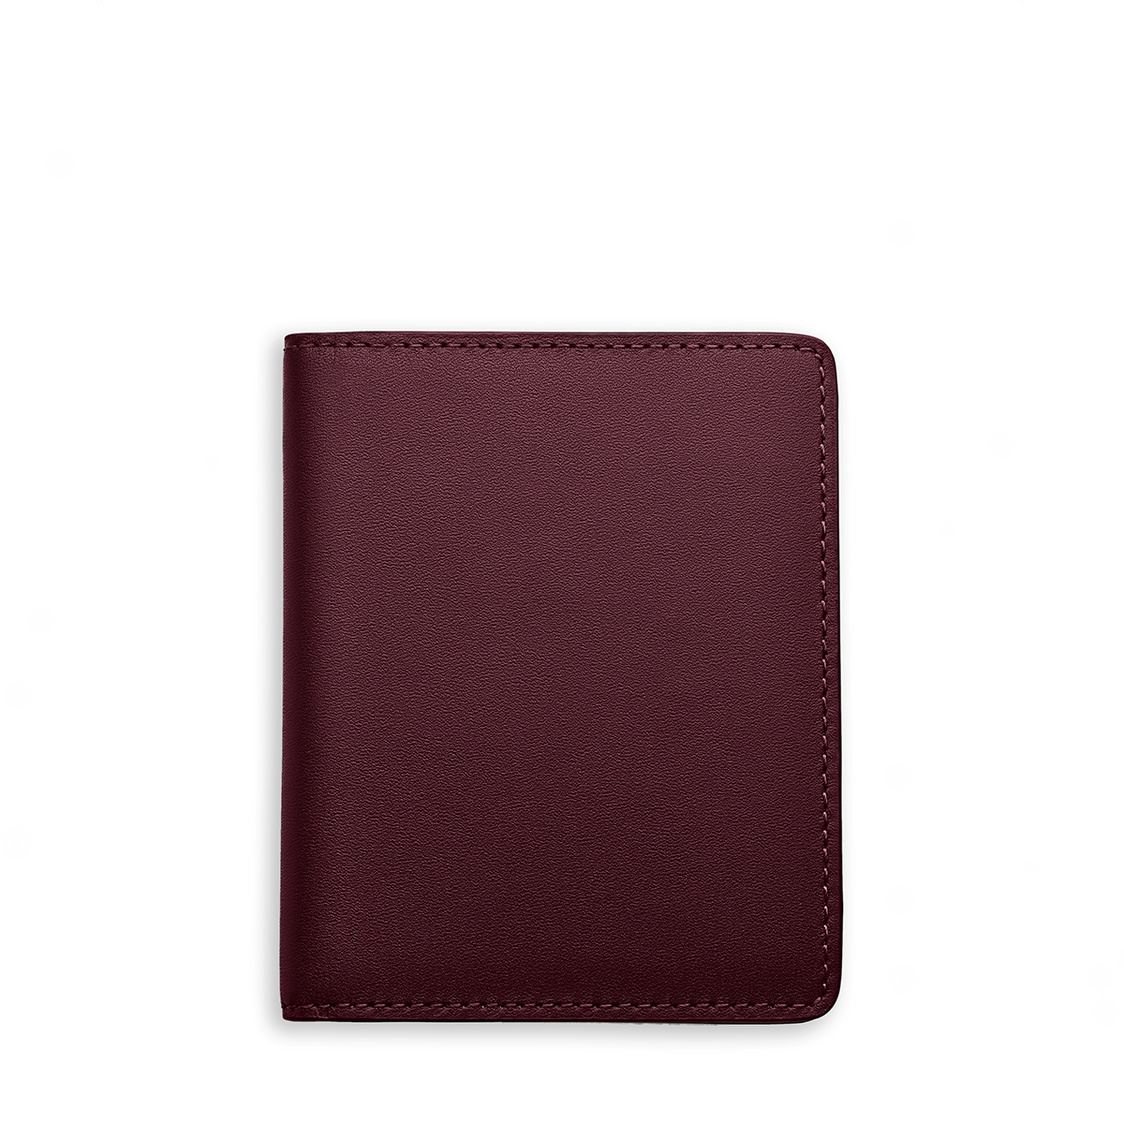 Kyl Wallet - Burgundy Leather